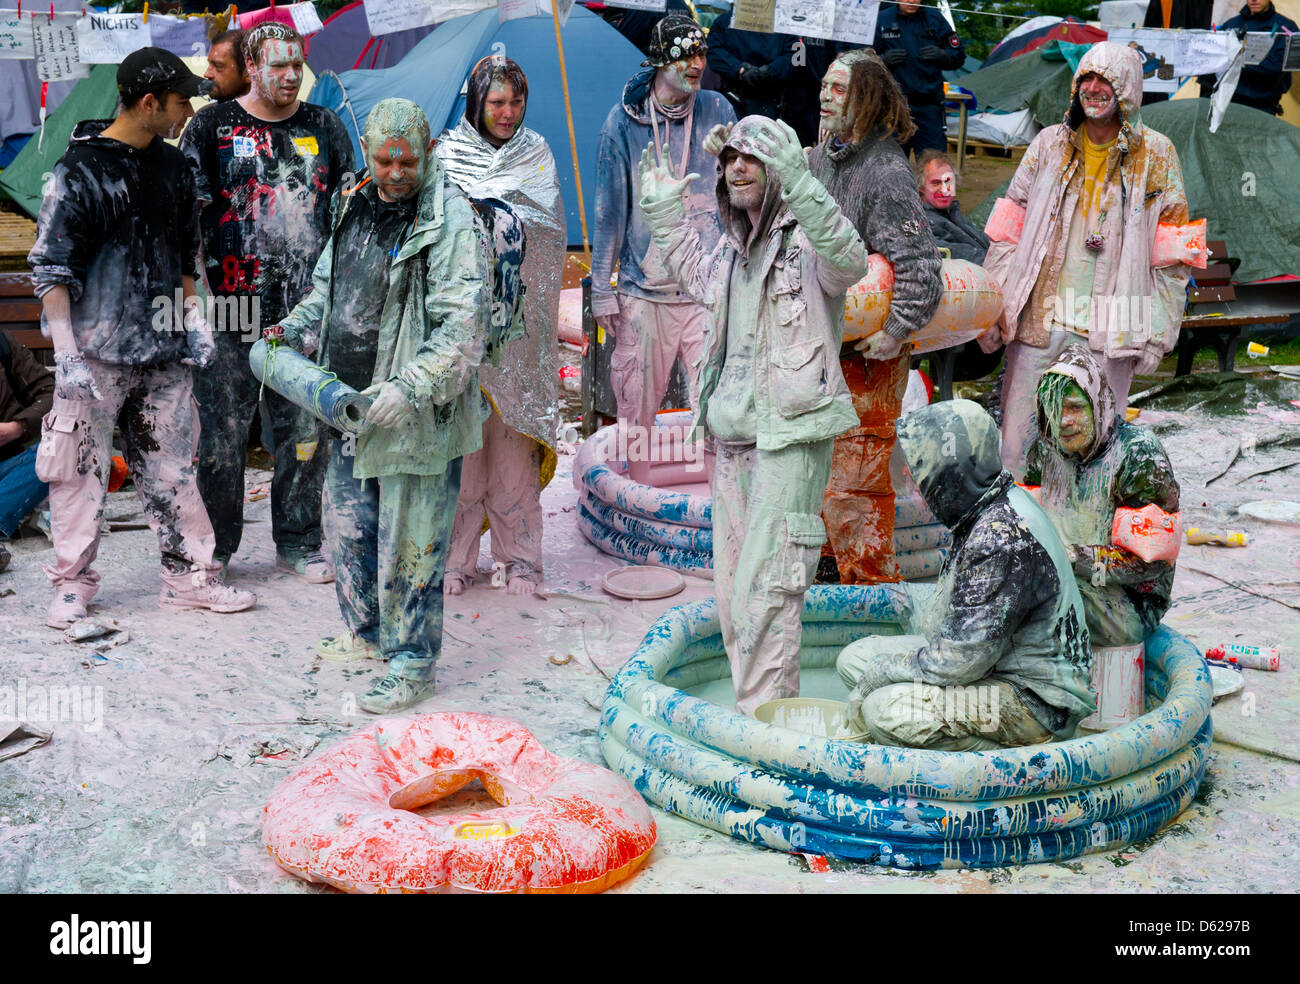 Drenched in wall paint, Occupy activists wait to be cleared out by the police in front of the European Central Bank - Stock Image